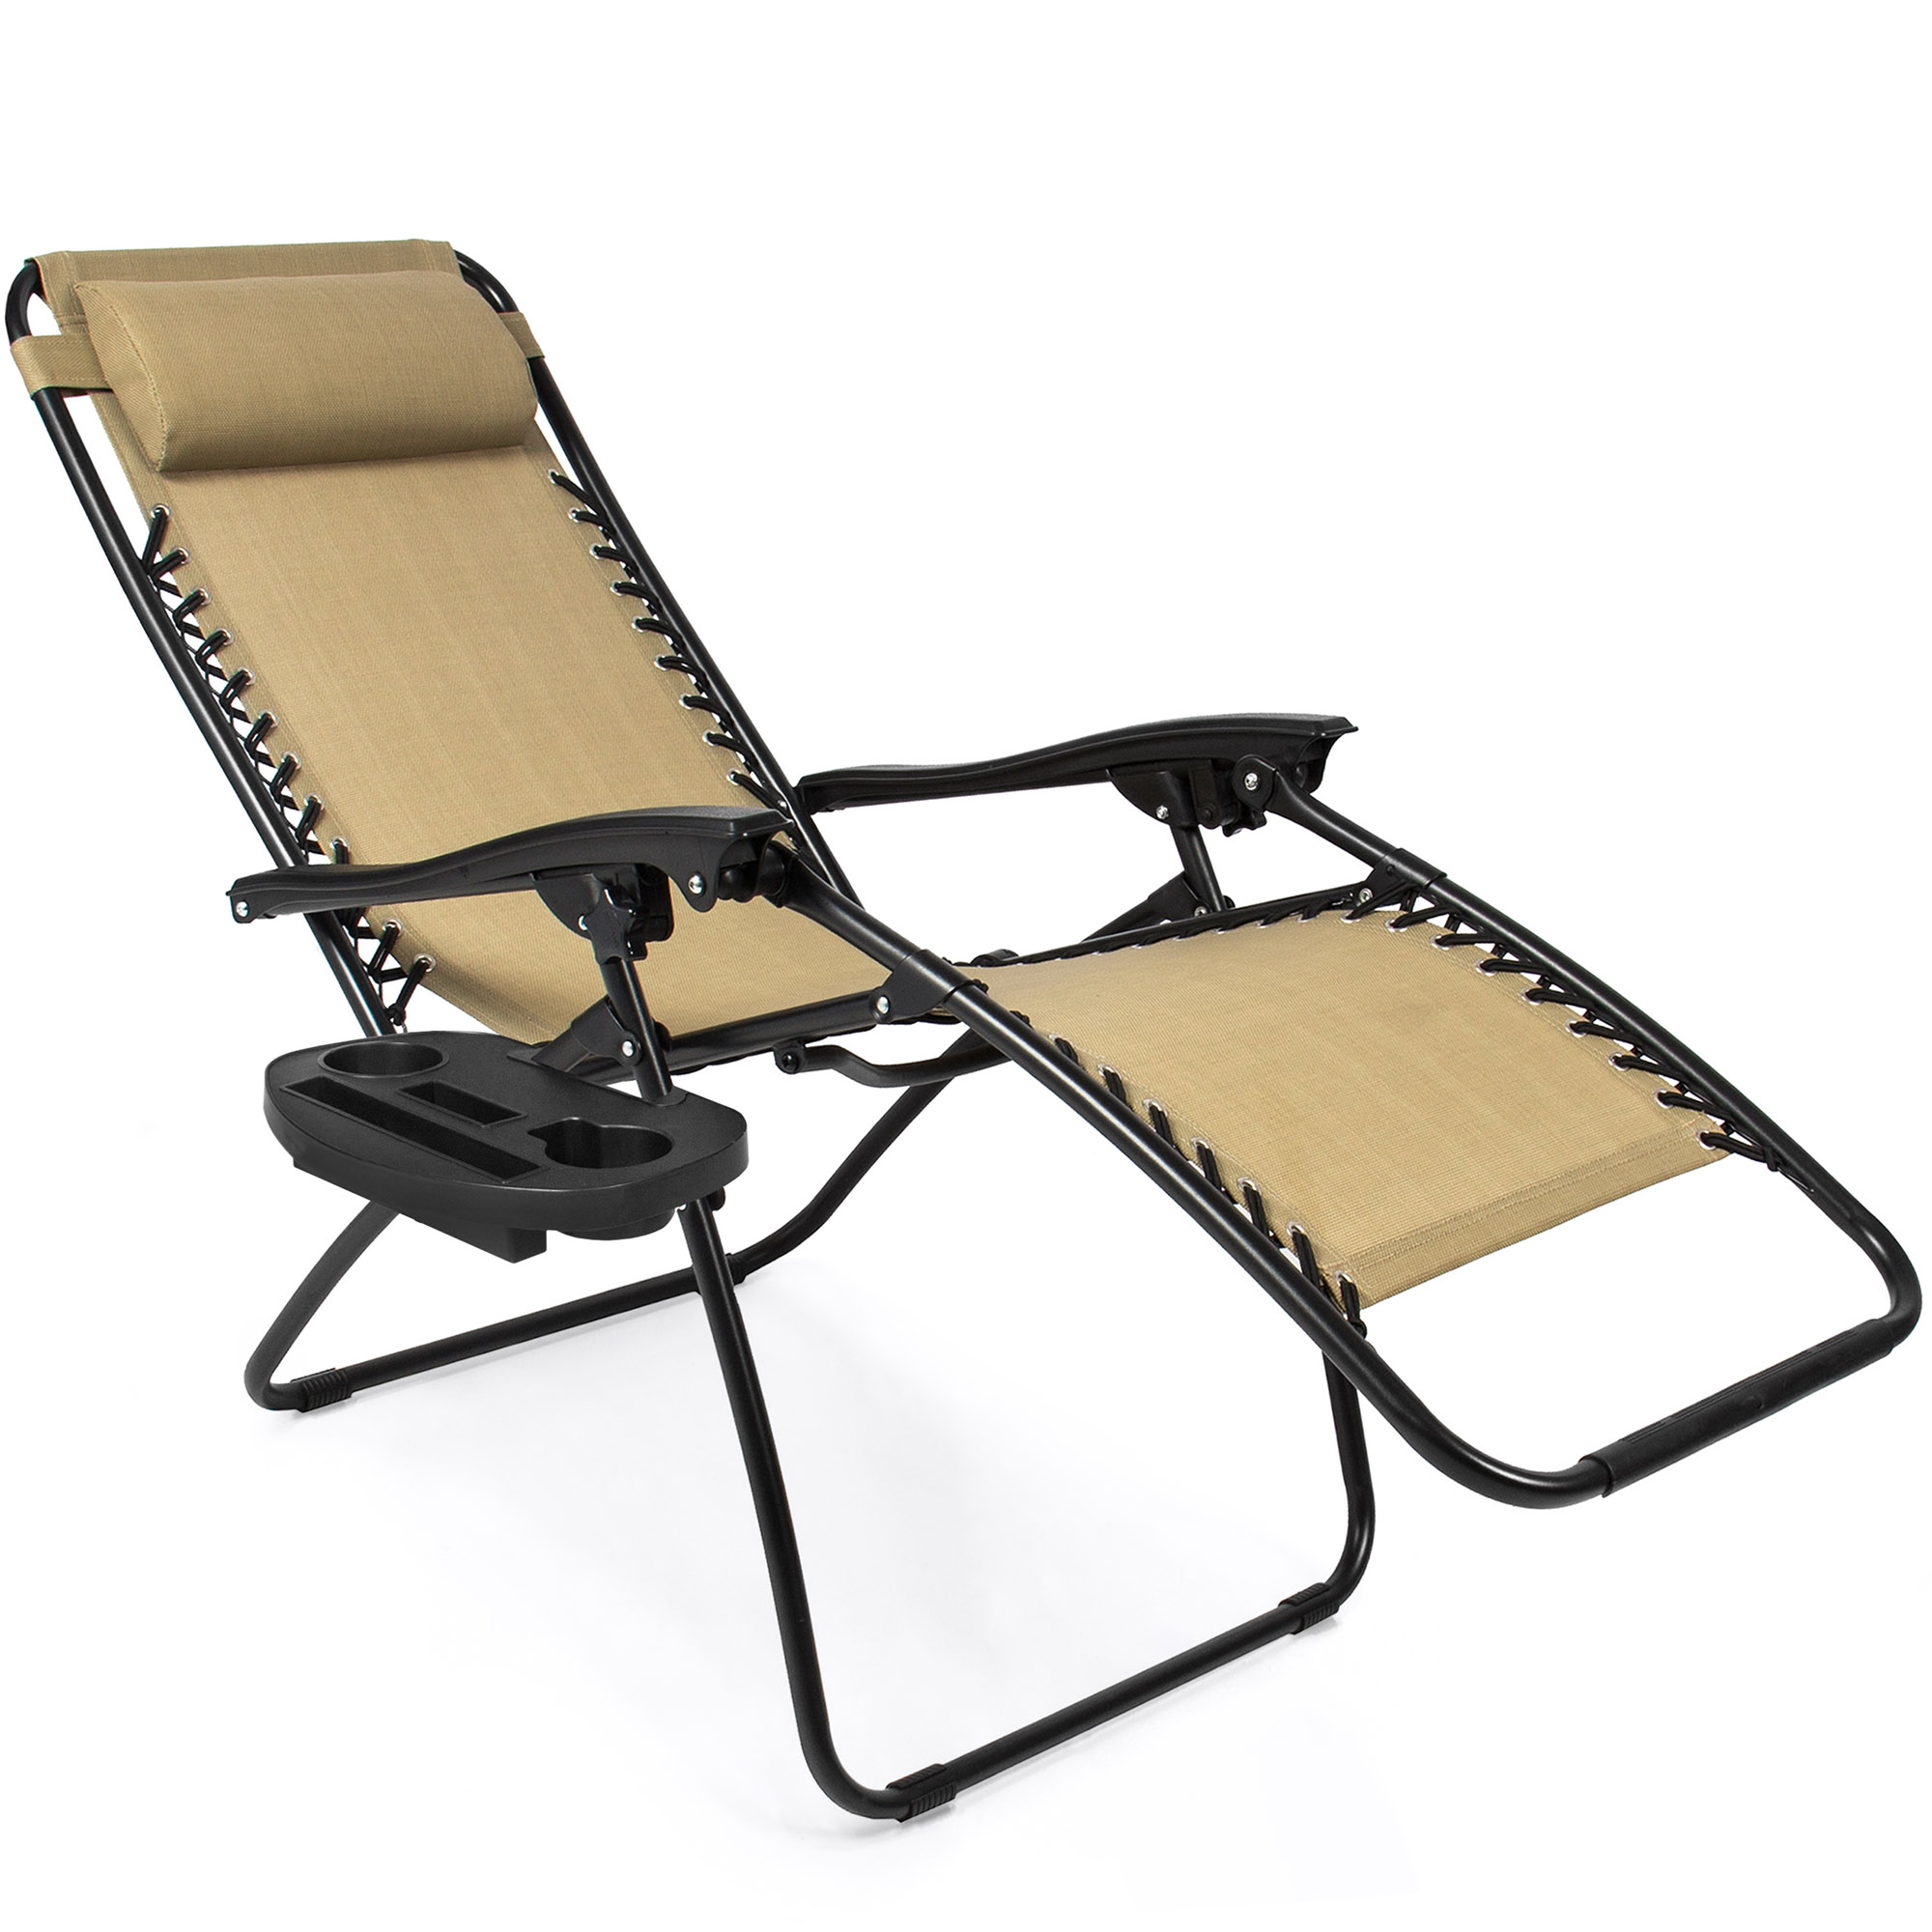 BCP-Set-of-2-Adjustable-Zero-Gravity-Patio-Chair-Recliners-w-Cup-Holders thumbnail 11